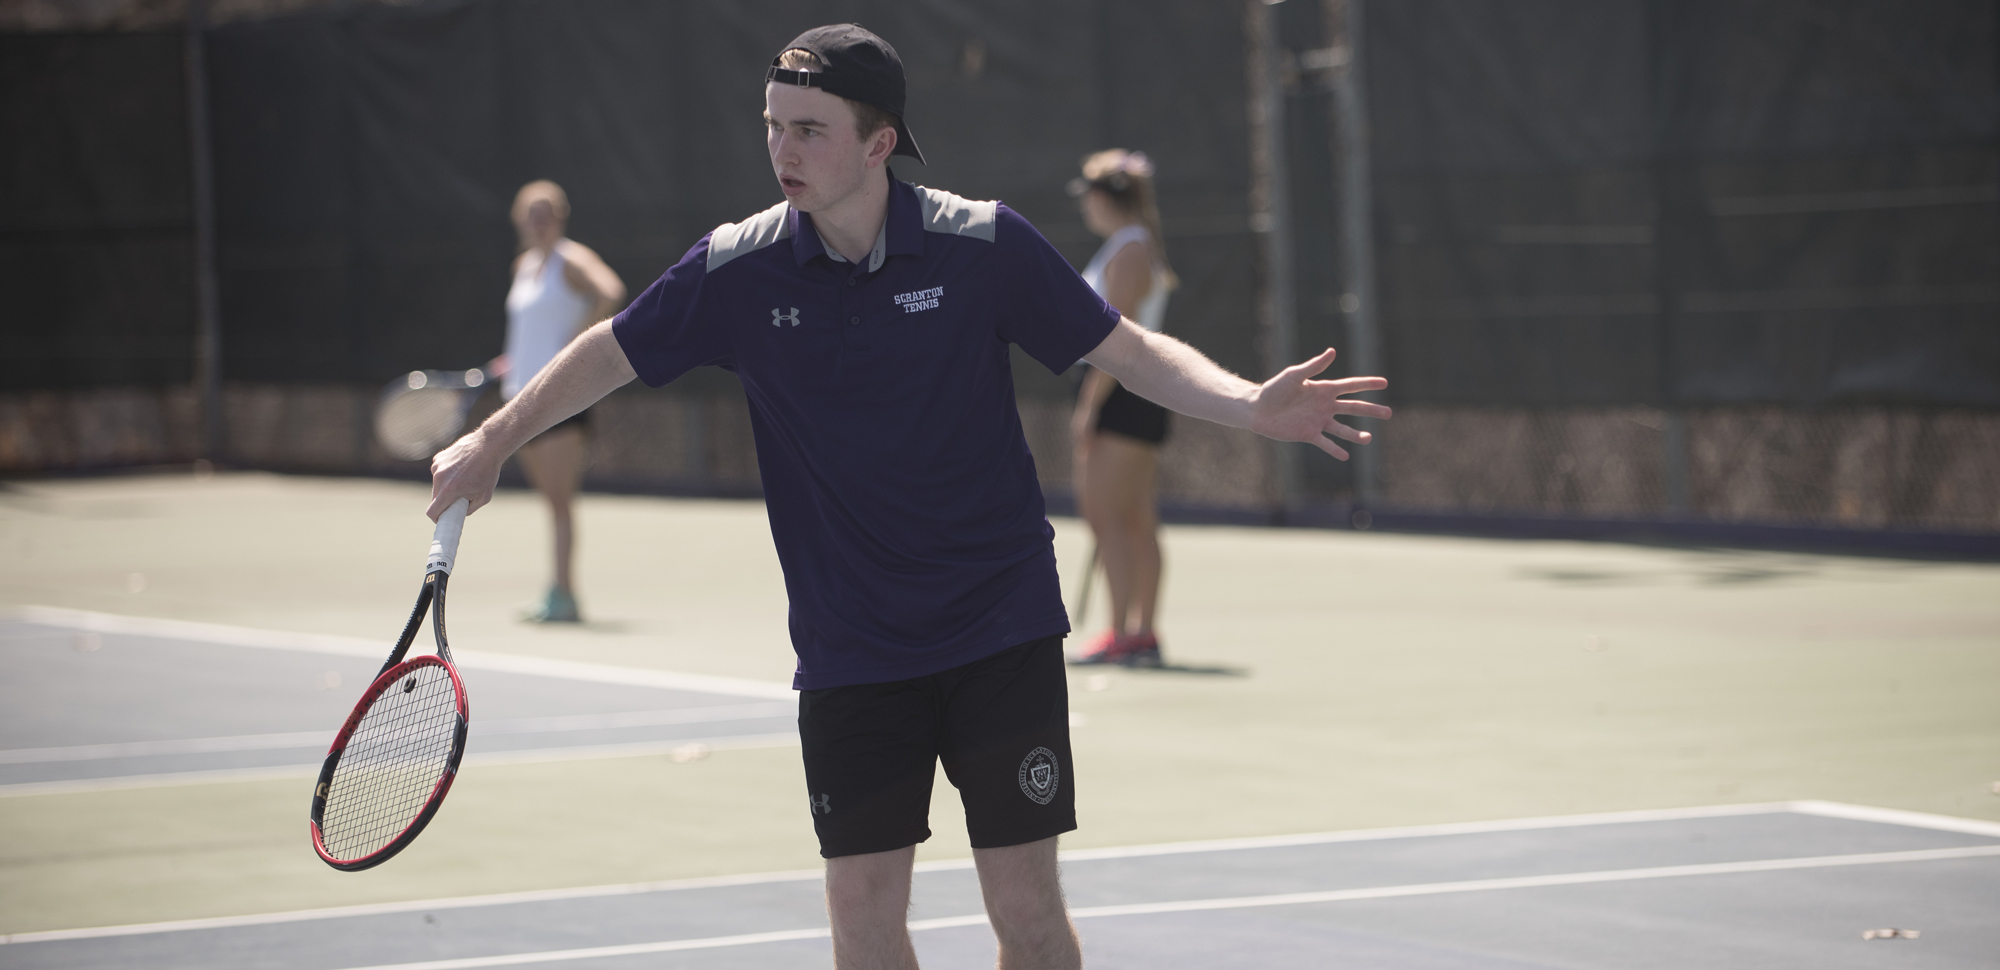 Sophomore Tarquin McGurrin won at number one doubles and singles at Elmira on Saturday in a 9=0 win for the Royals.